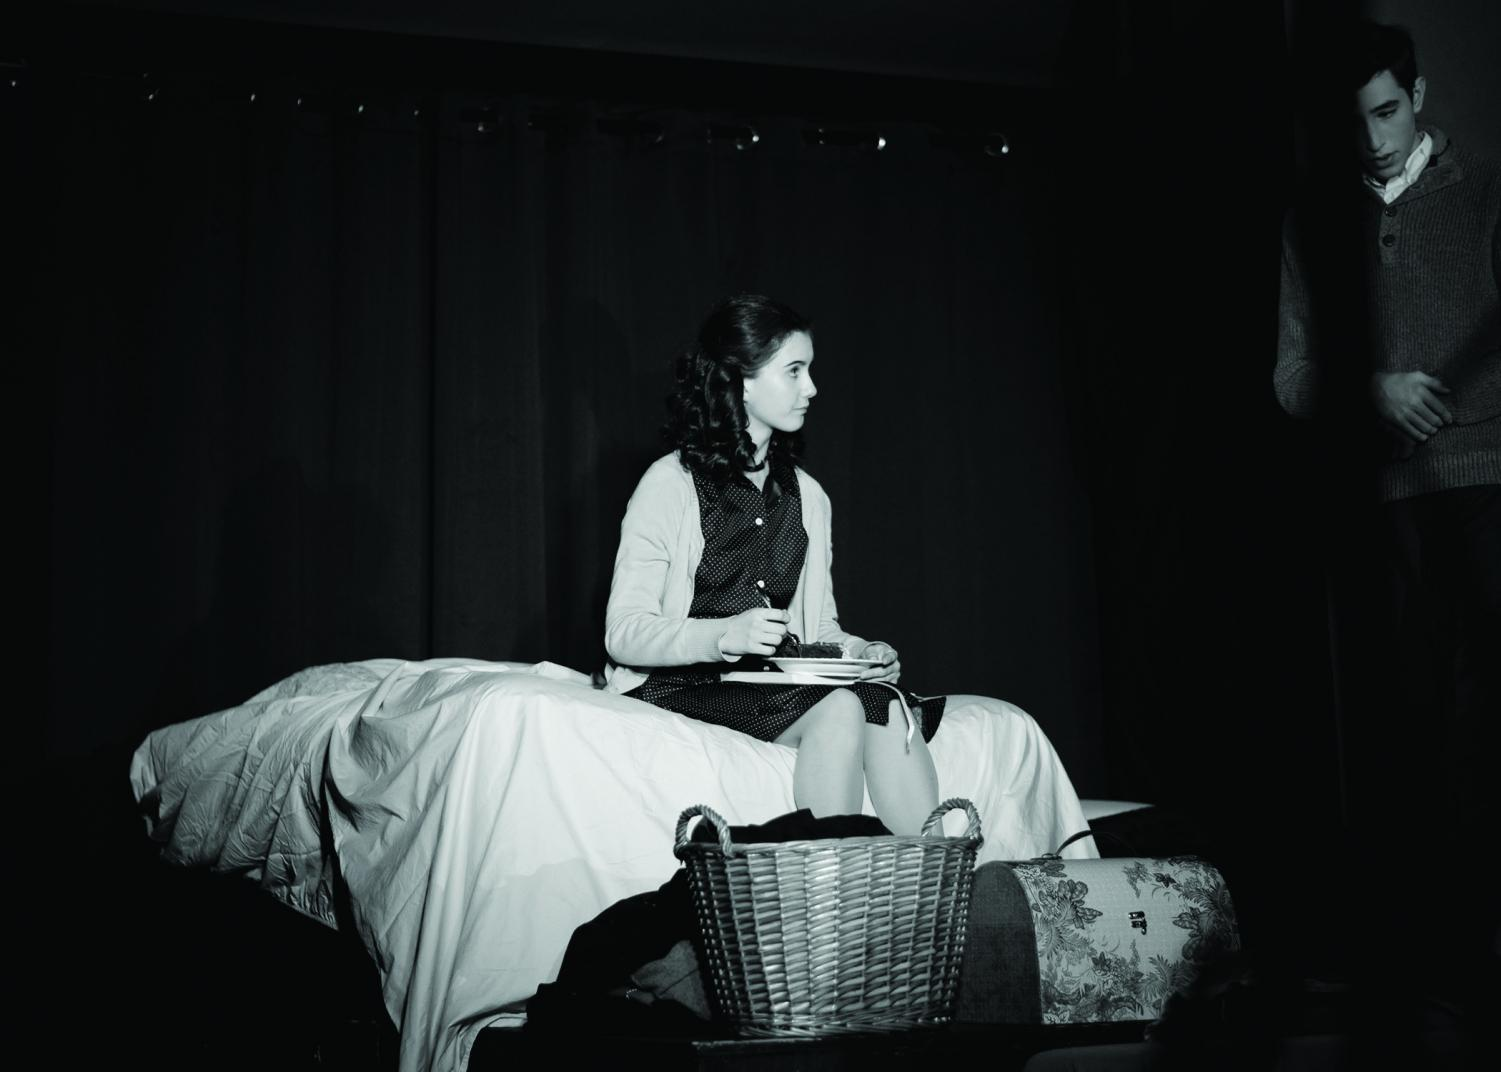 Sophomore Bella Carmona-Ramirez of Long Branch acts as Anne Frank, the play's lead, during a scene in the character's bedroom. This is the first CHS Drama production for Ramirez.